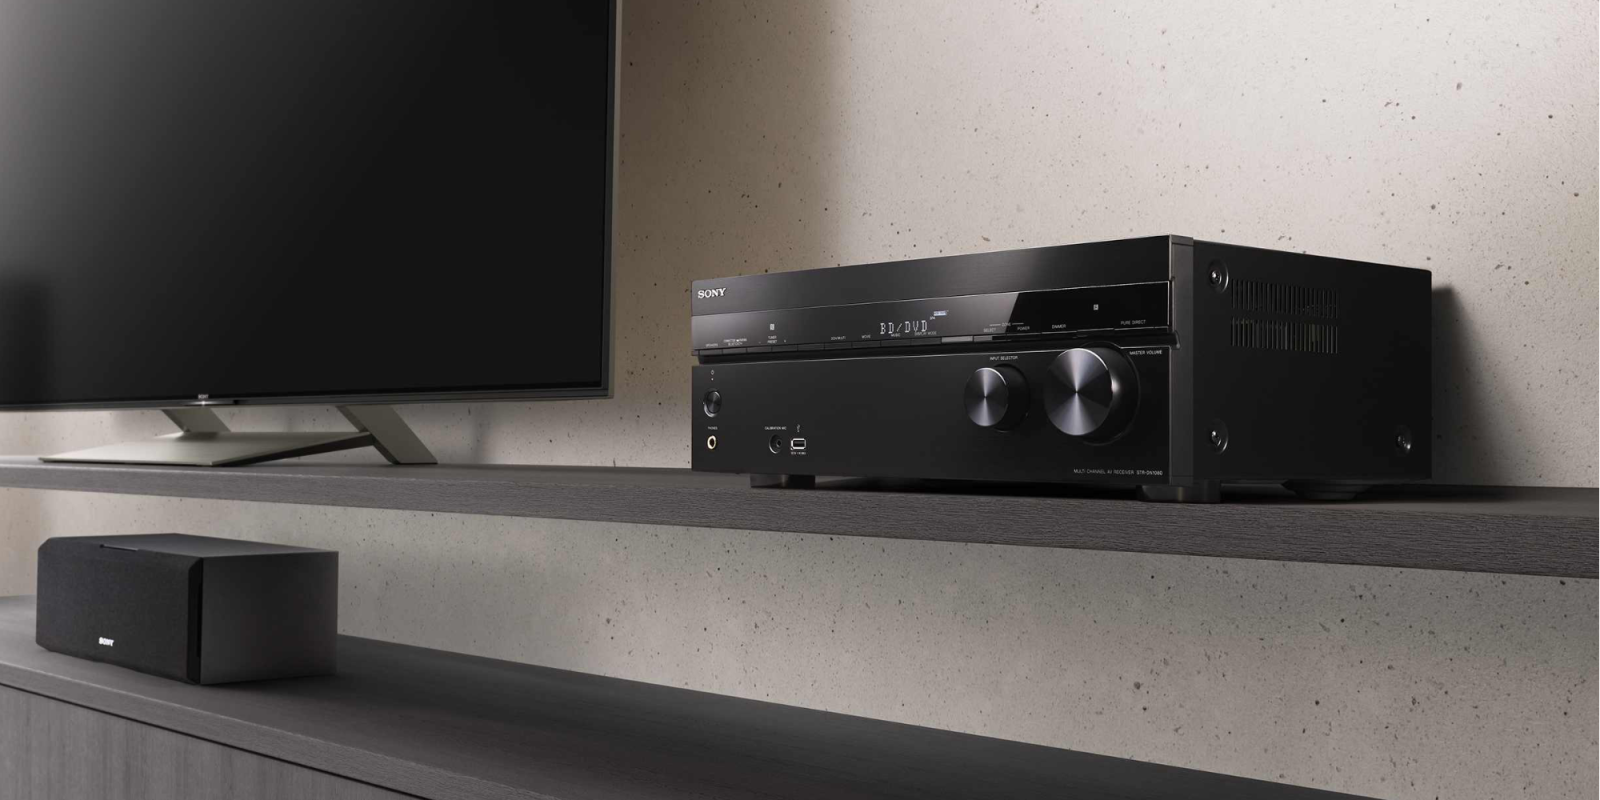 Sony's Surround Sound Receiver rocks AirPlay + Chromecast at $348 (23% off)